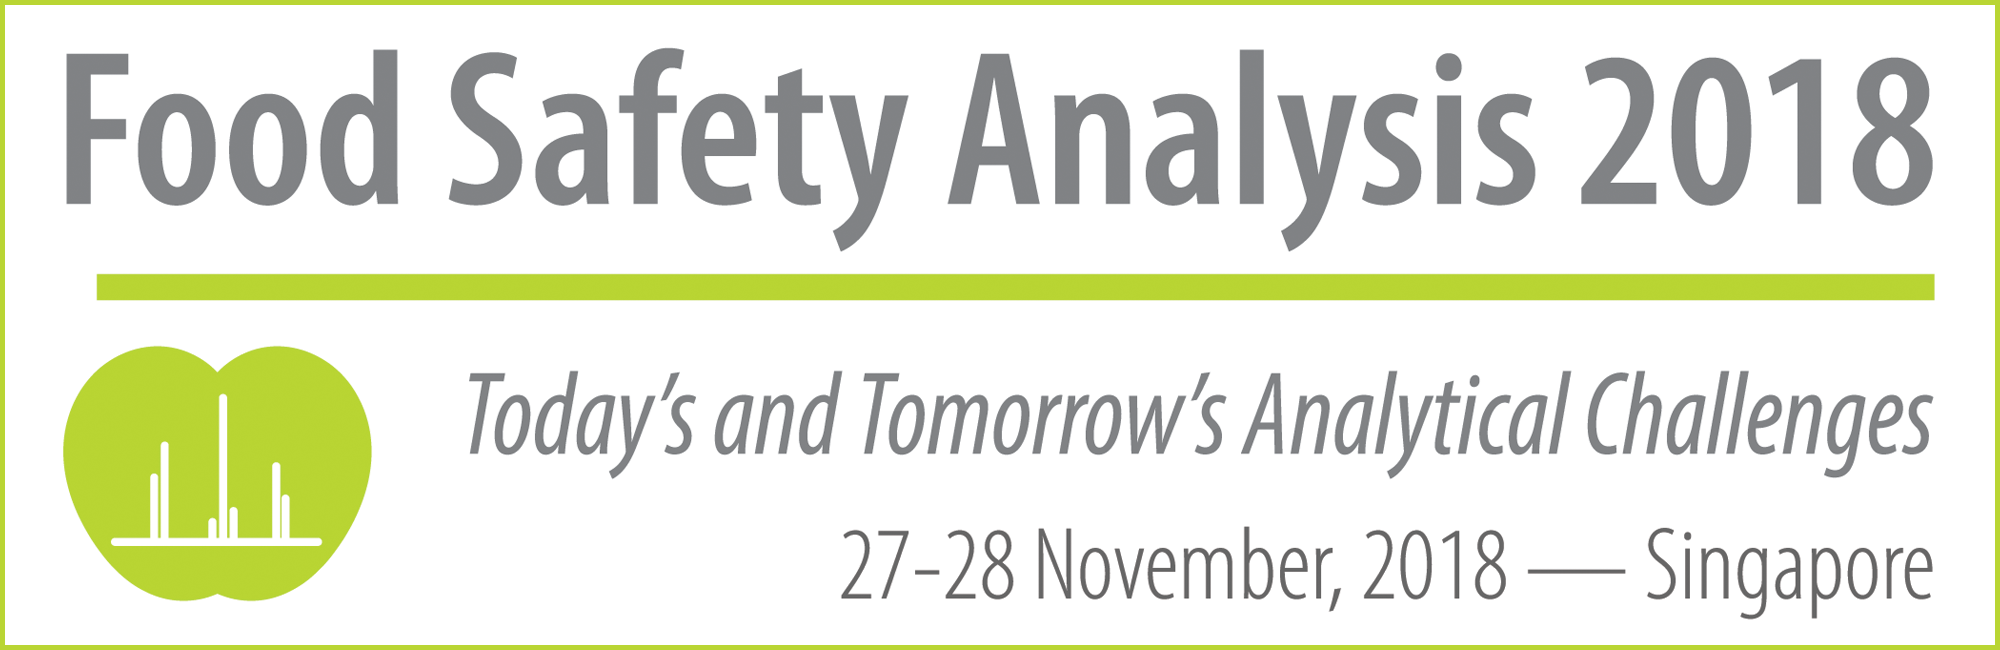 Food Safety Analysis 2018 Logo_Main_Web_v3.png